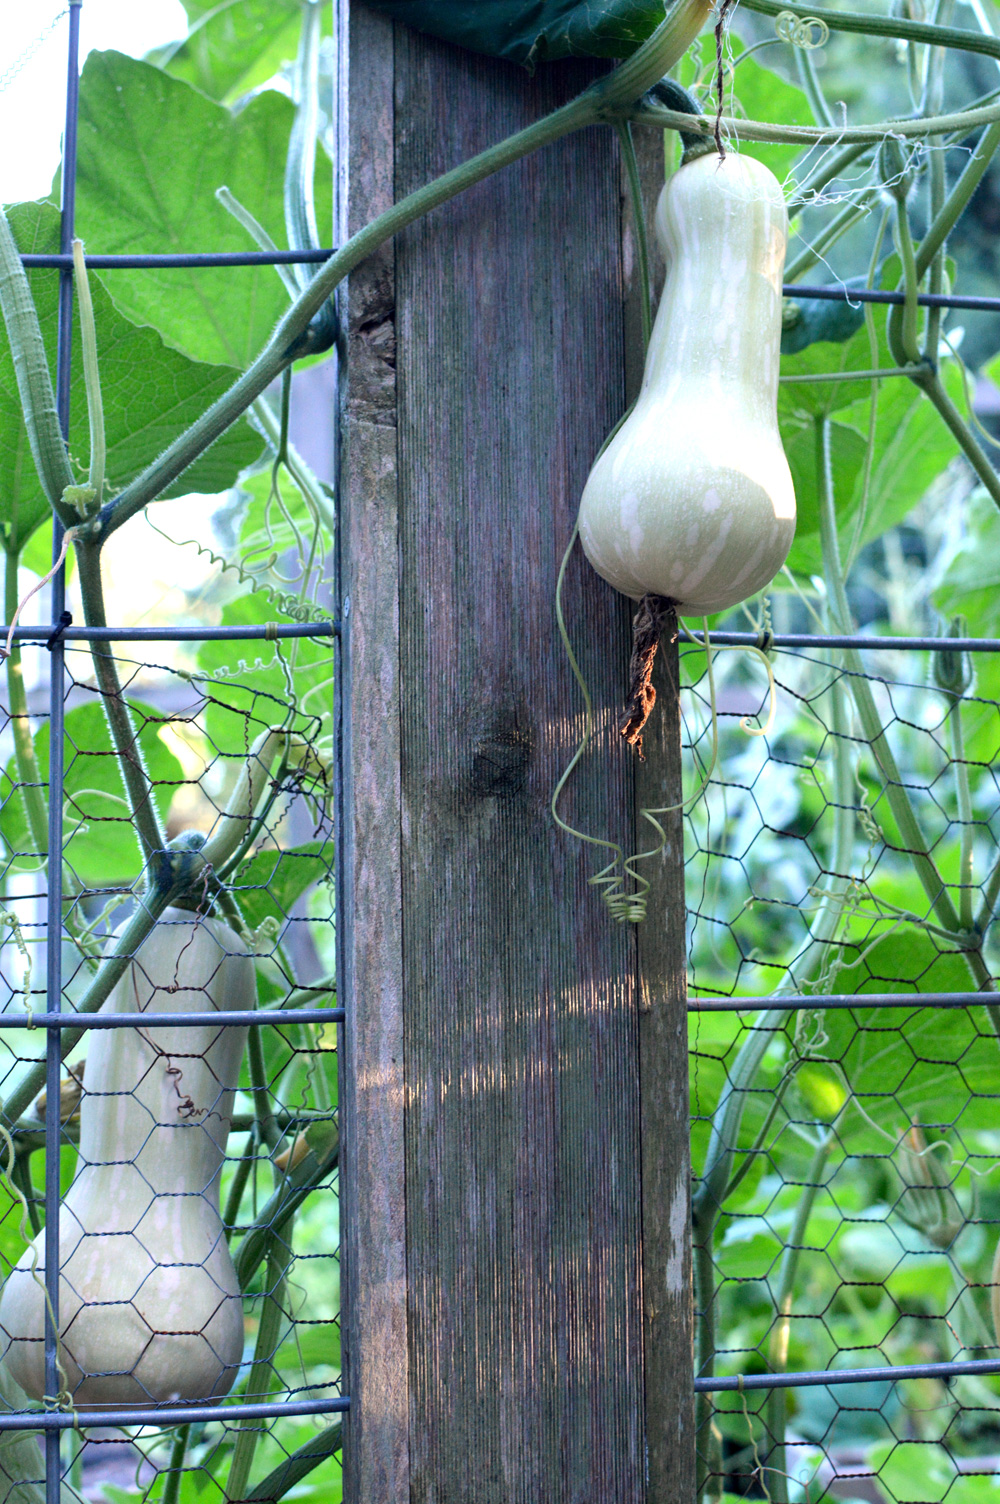 Butternut Squash. Growing it up the fence this year.